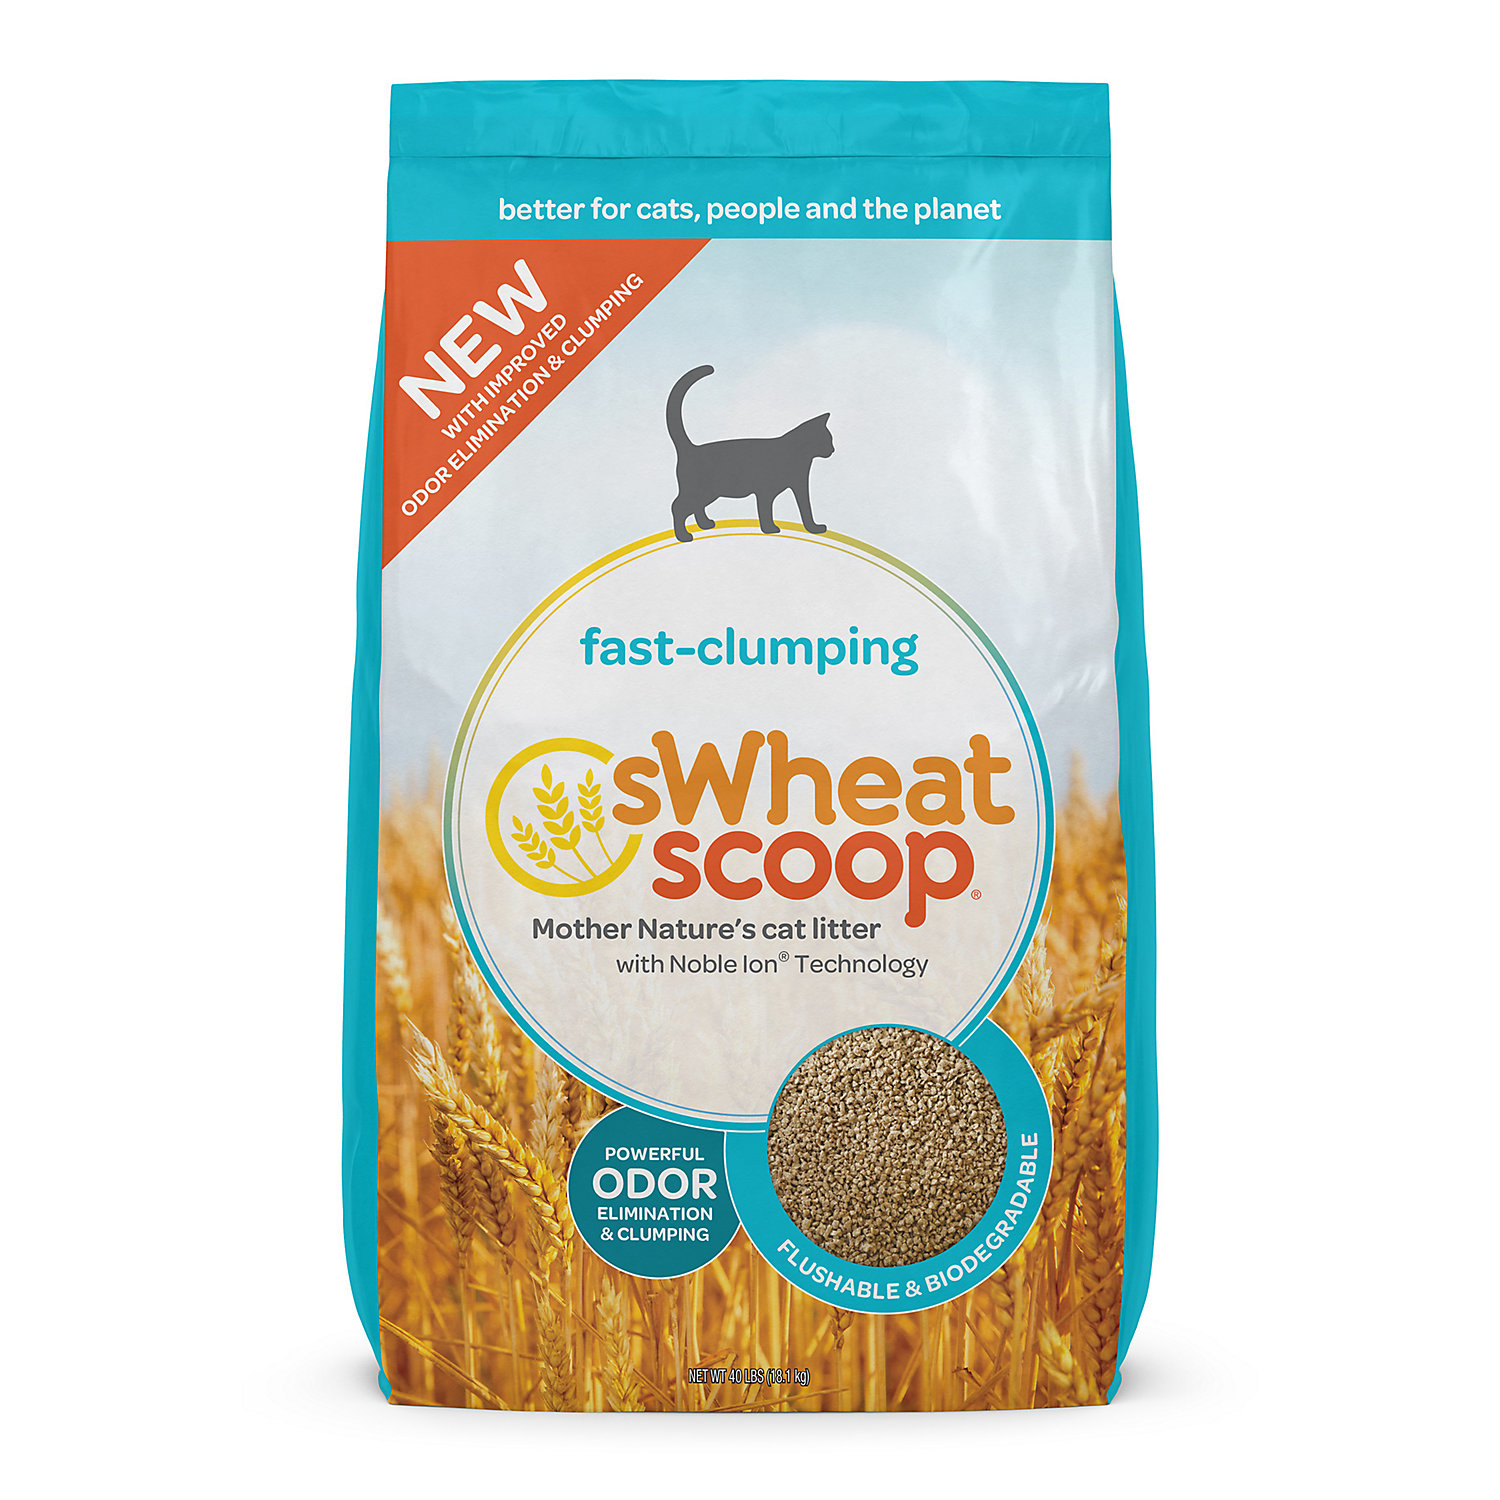 What Is Swheat Scoop Cat Litter Made Out Of